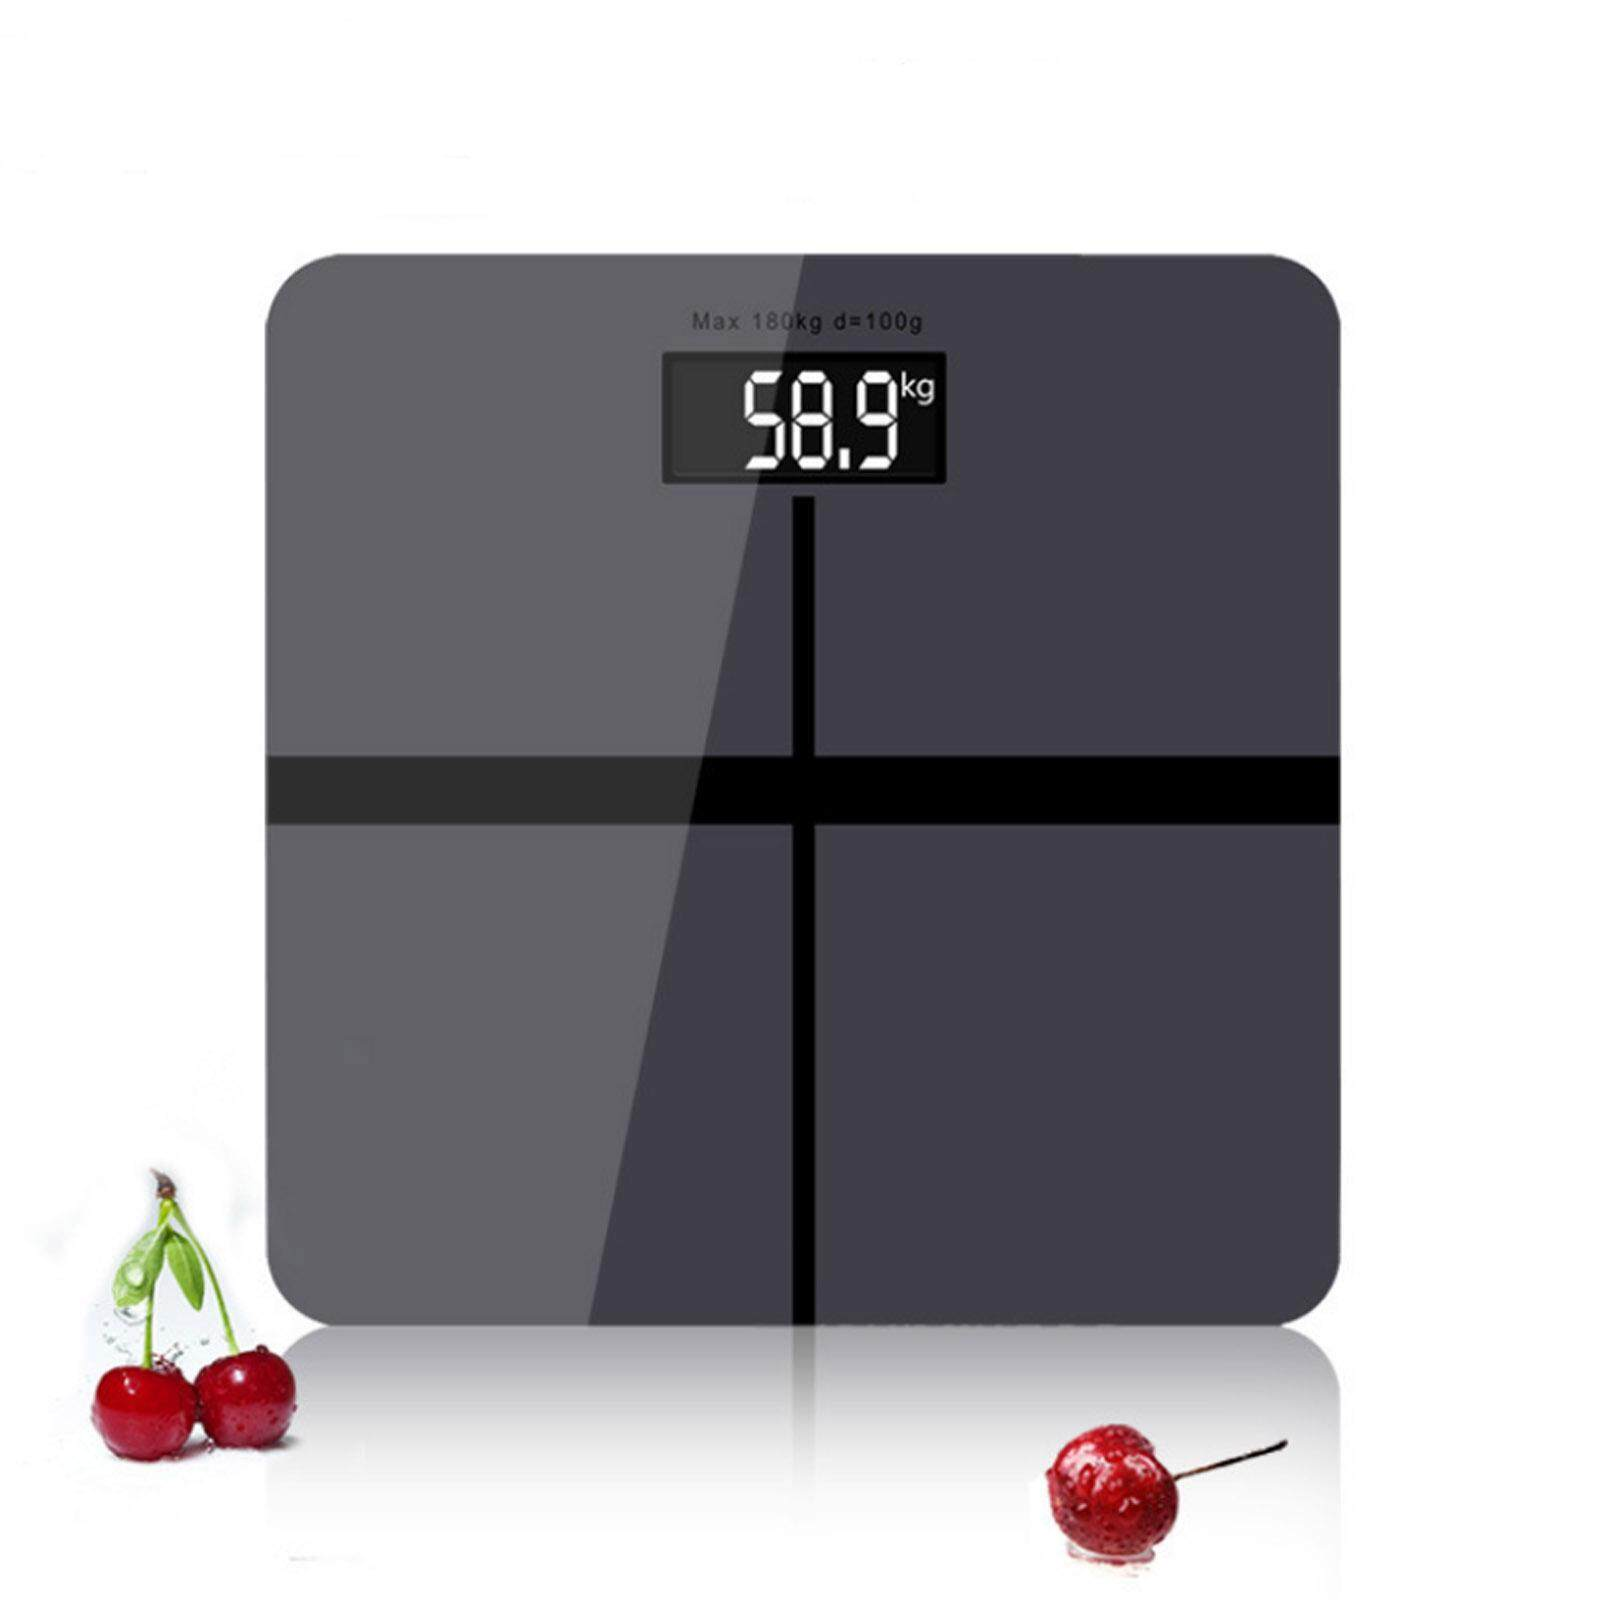 NaVa Precision 28cm*28cm Weight Scale Digital Body Measuring Scale (SPACE GREY)